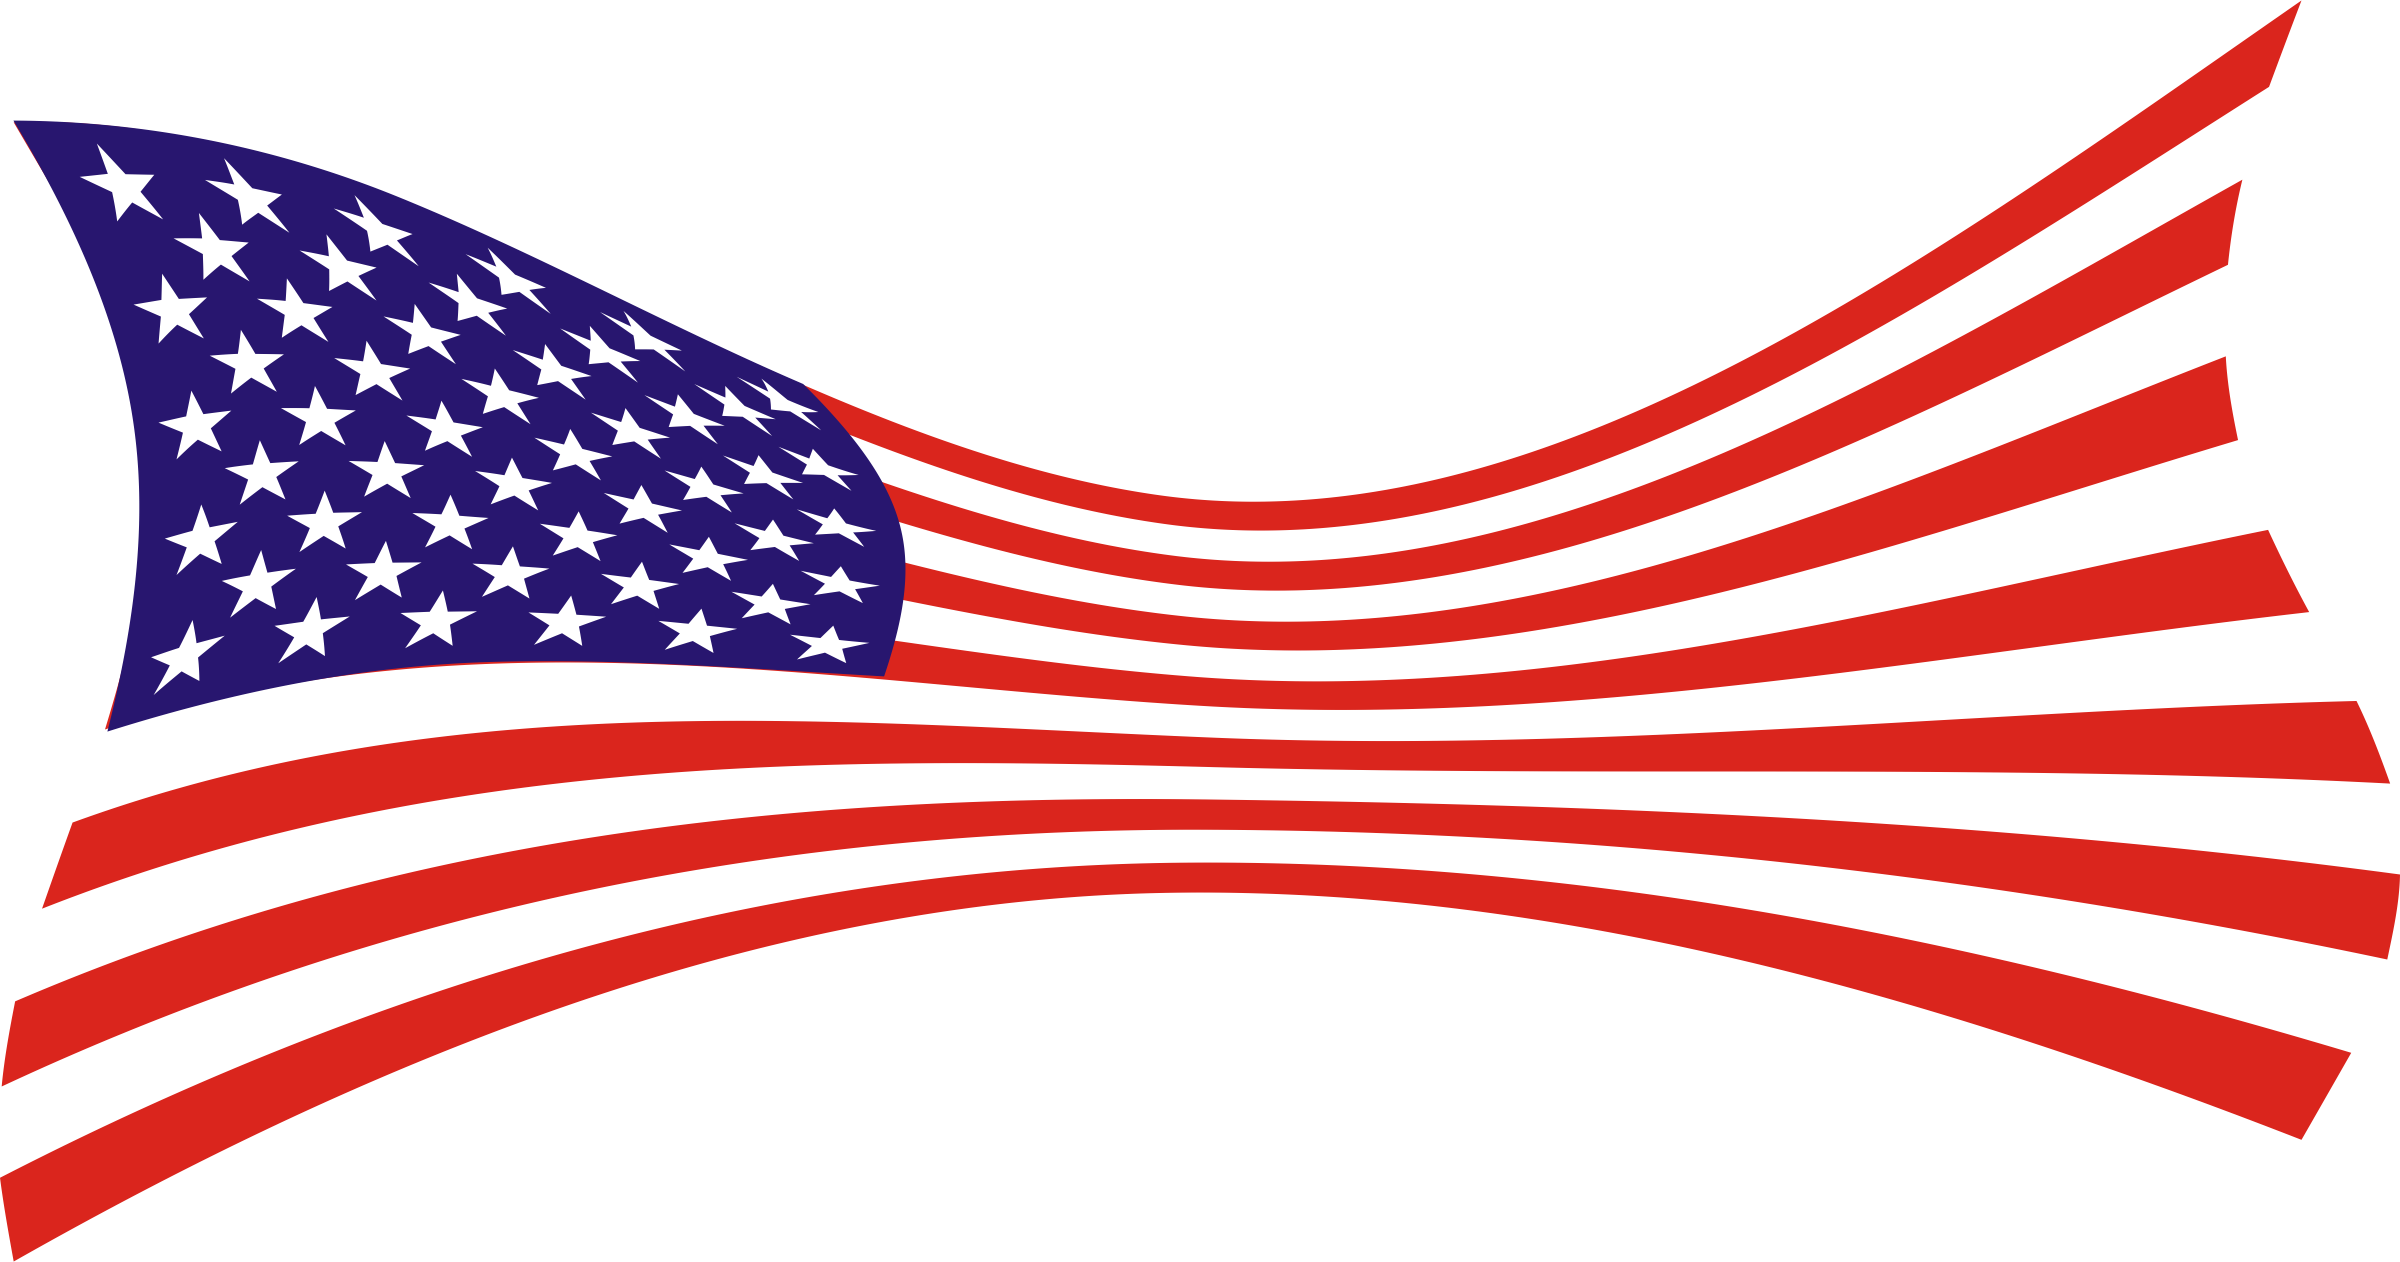 United States of America Flag of the United States Vector.